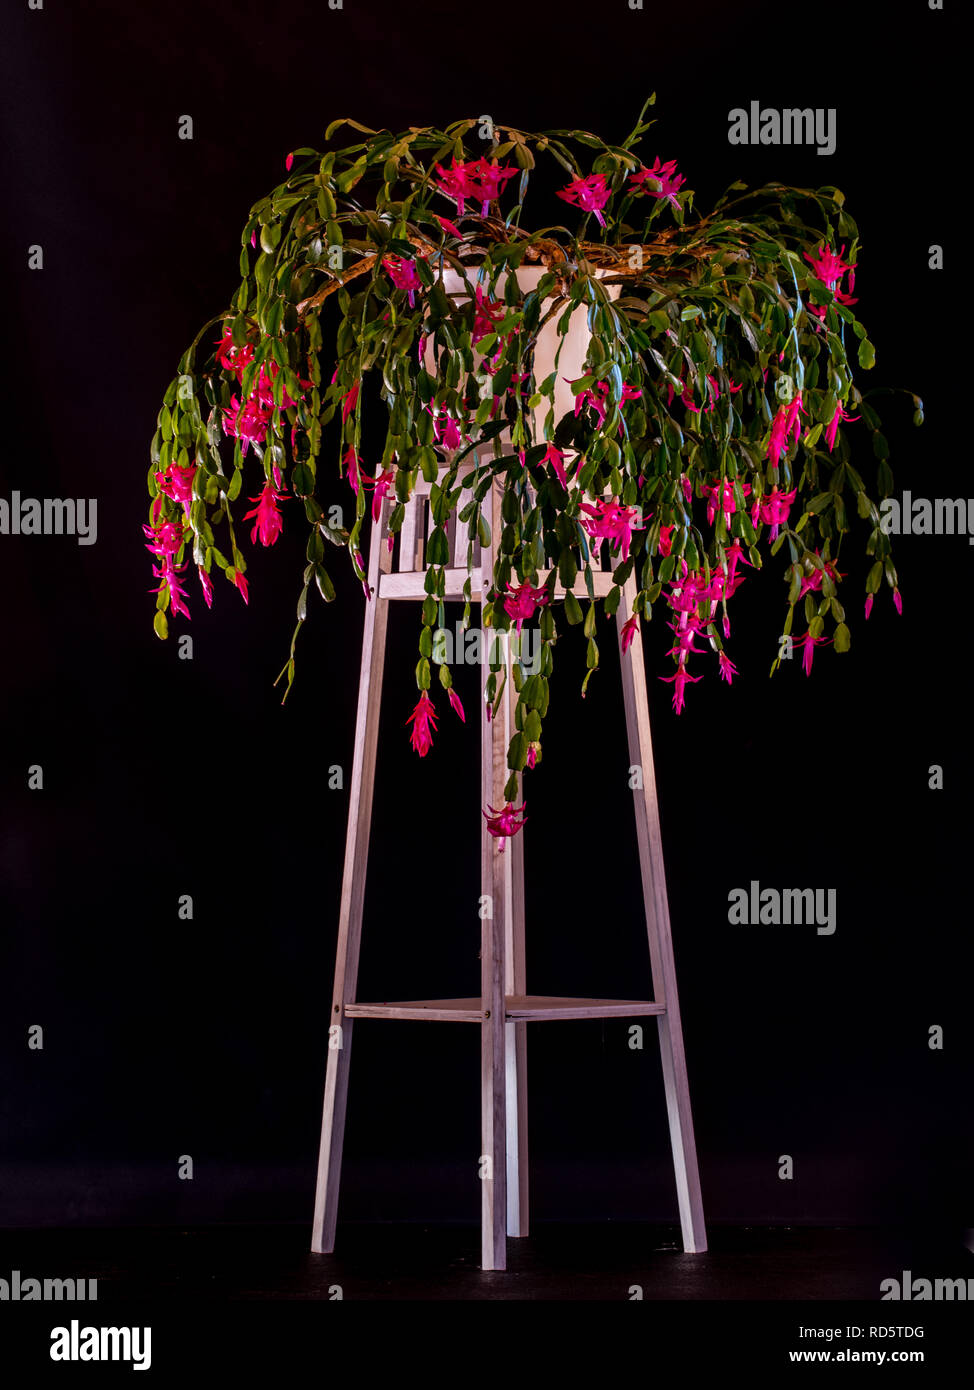 Schlumbergera or Christmas cactus grown as a houseplant on a pedestal with a black background. Flowering in january. - Stock Image